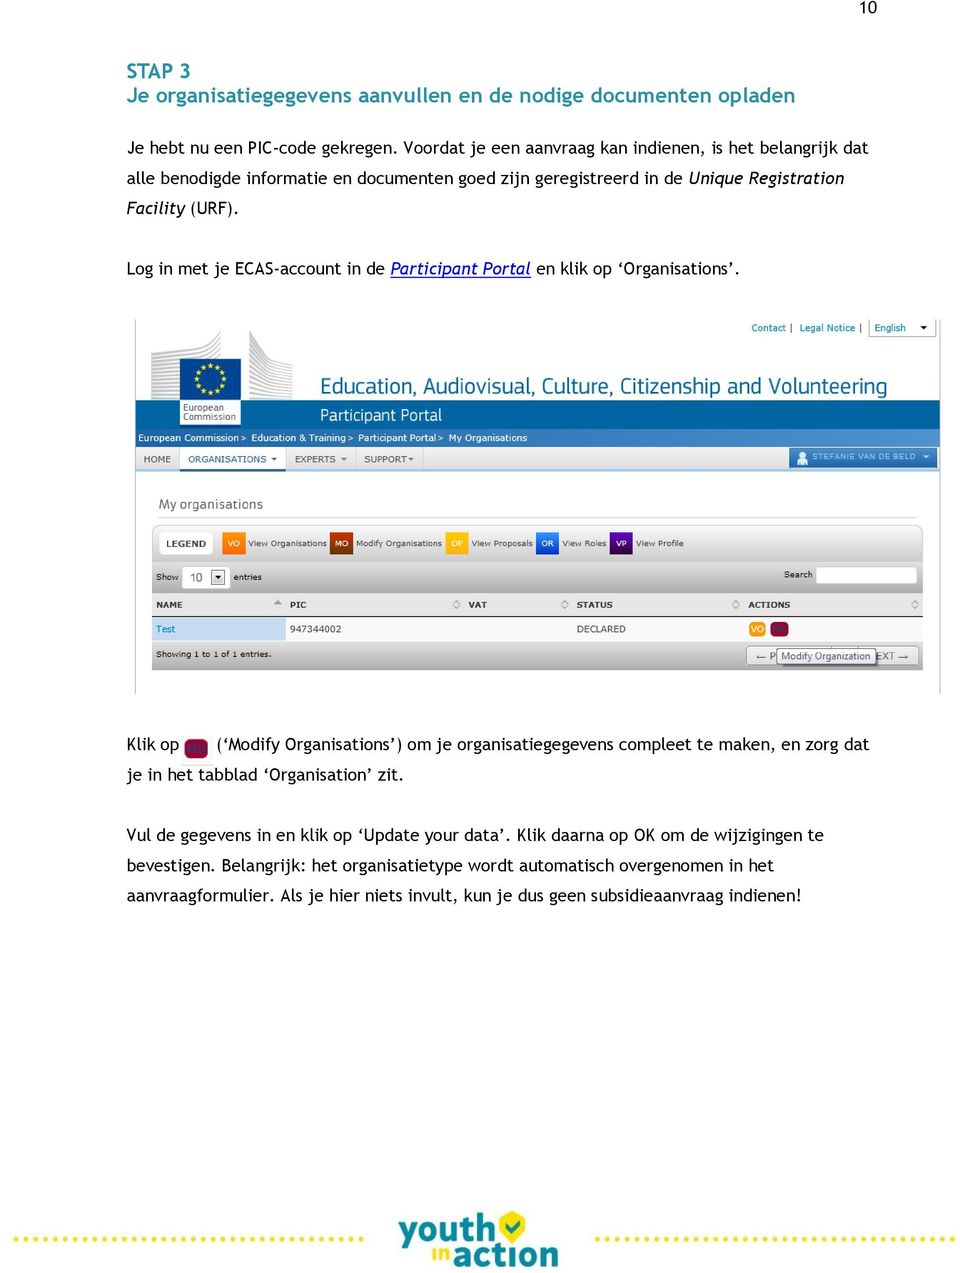 Log in met je ECAS-account in de Participant Portal en klik op Organisations.